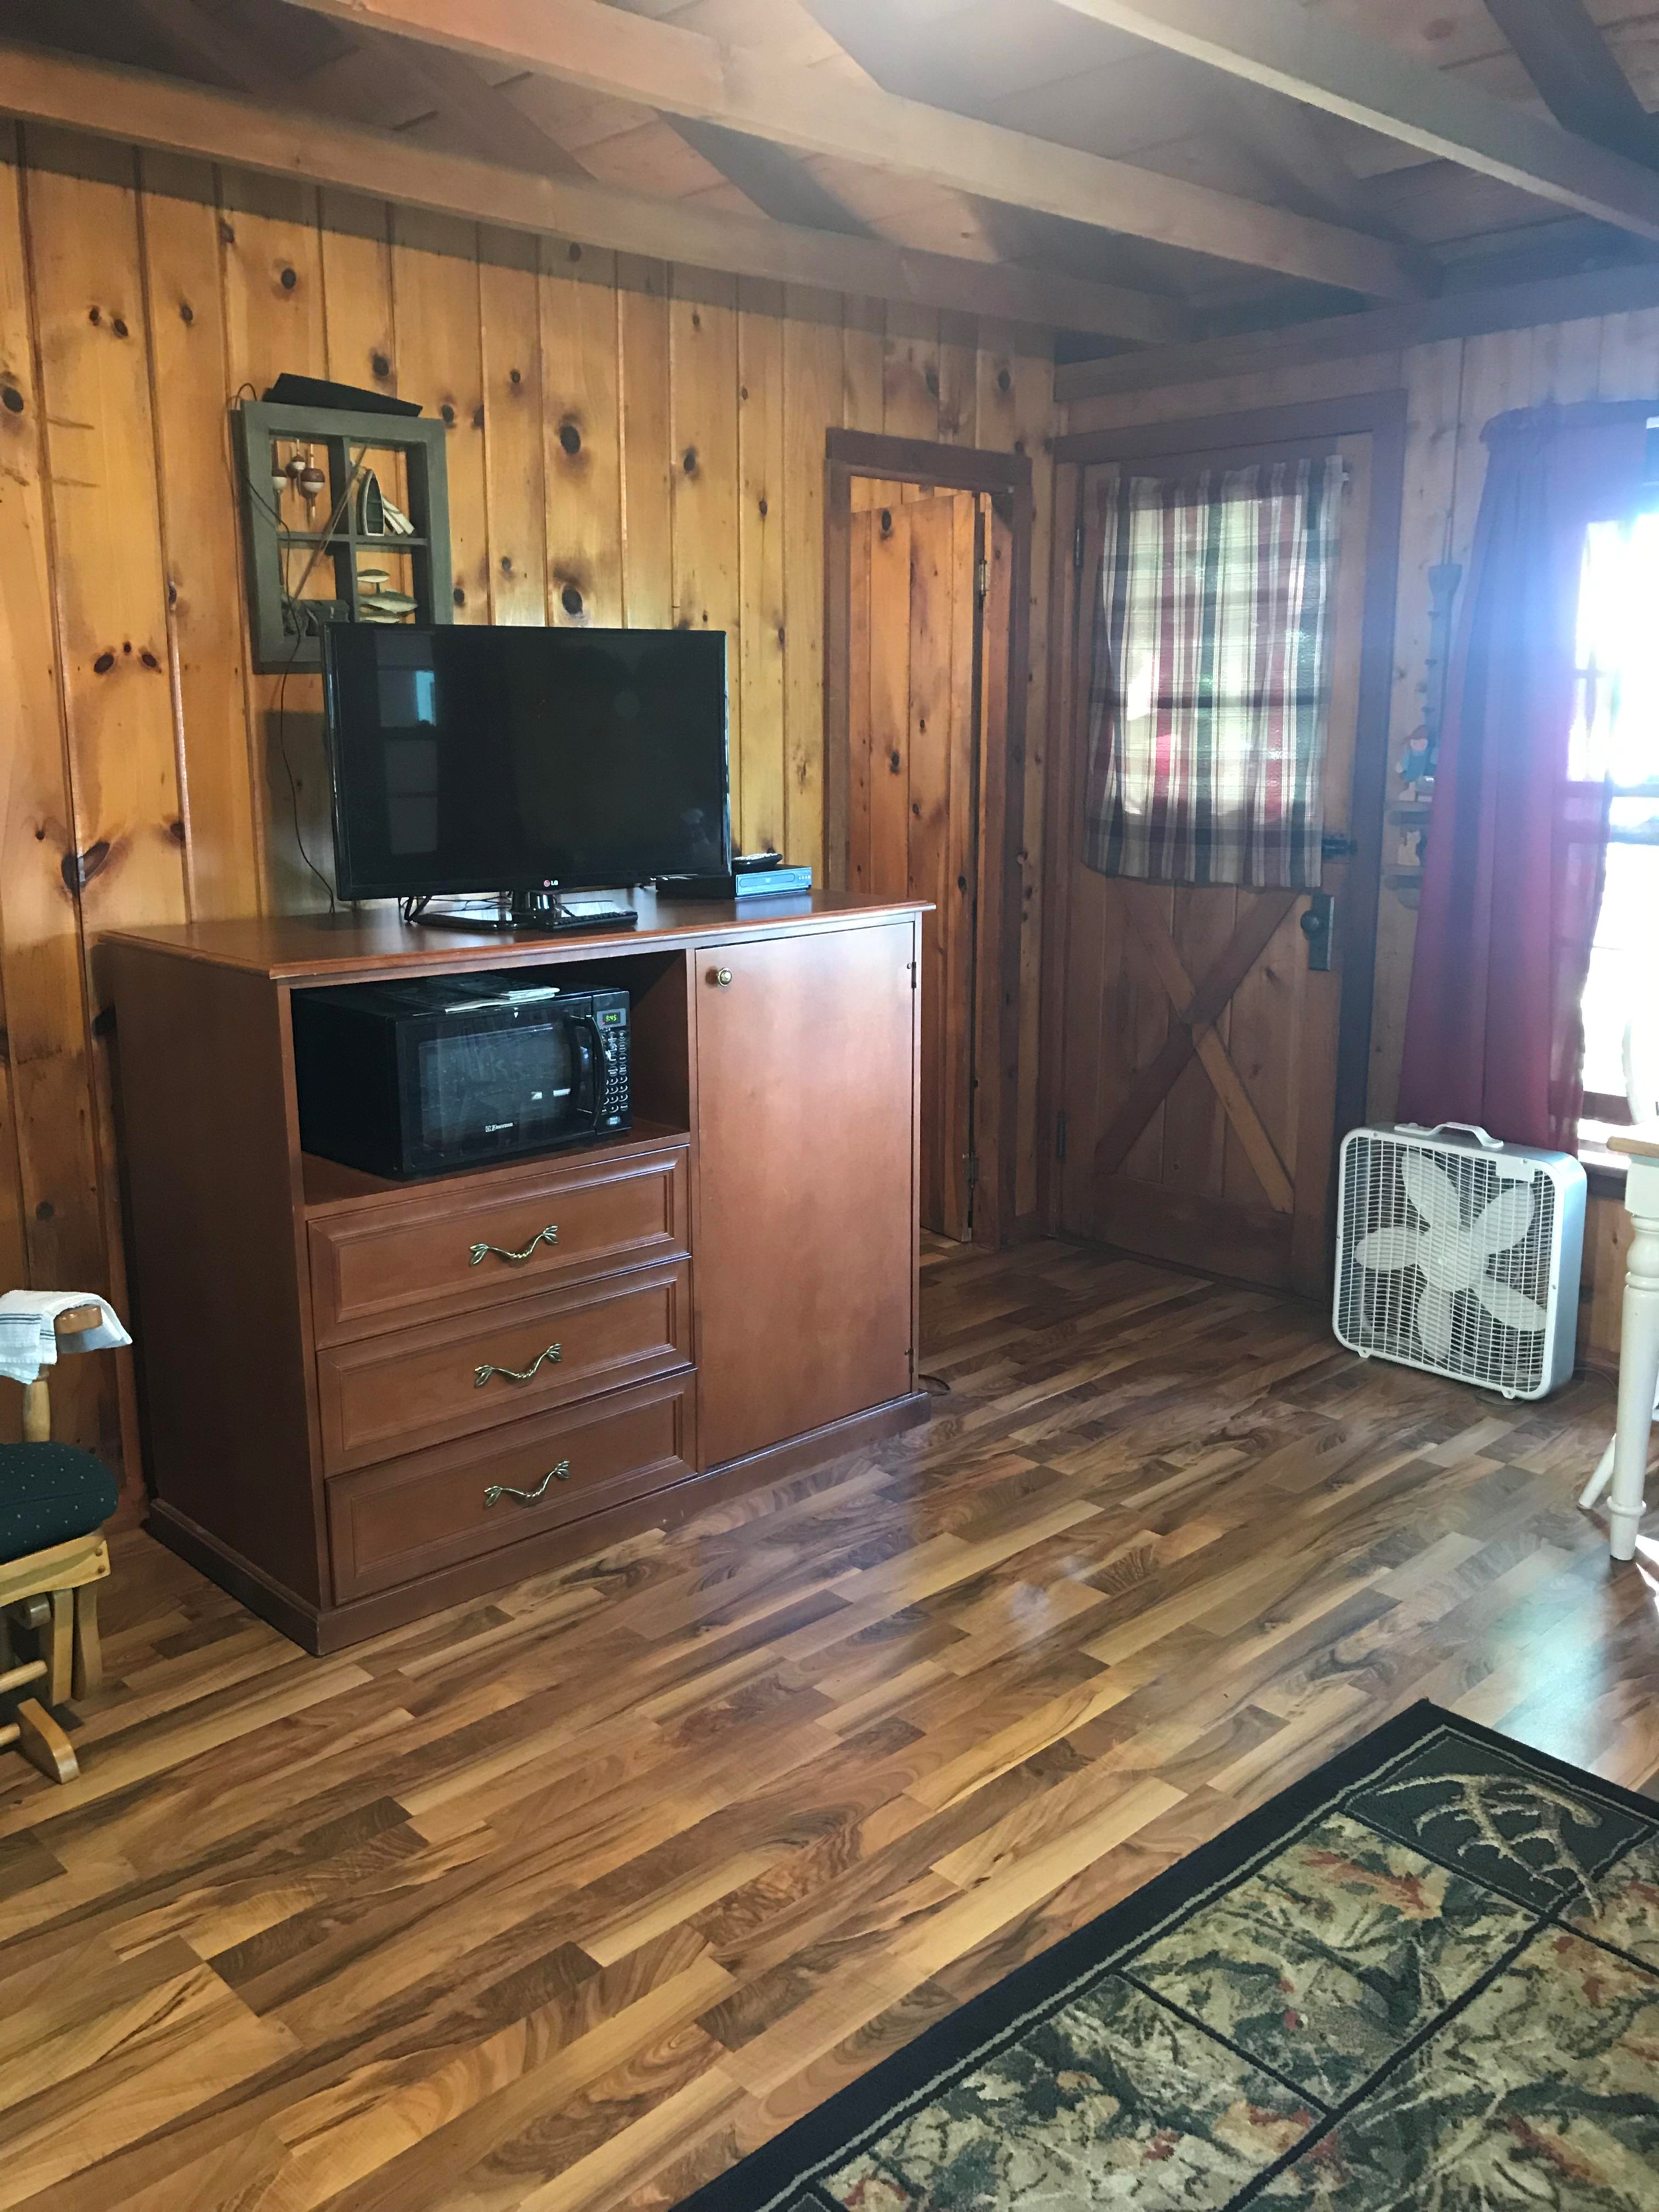 New renovated cabin in Autrain, MI. Lakeview